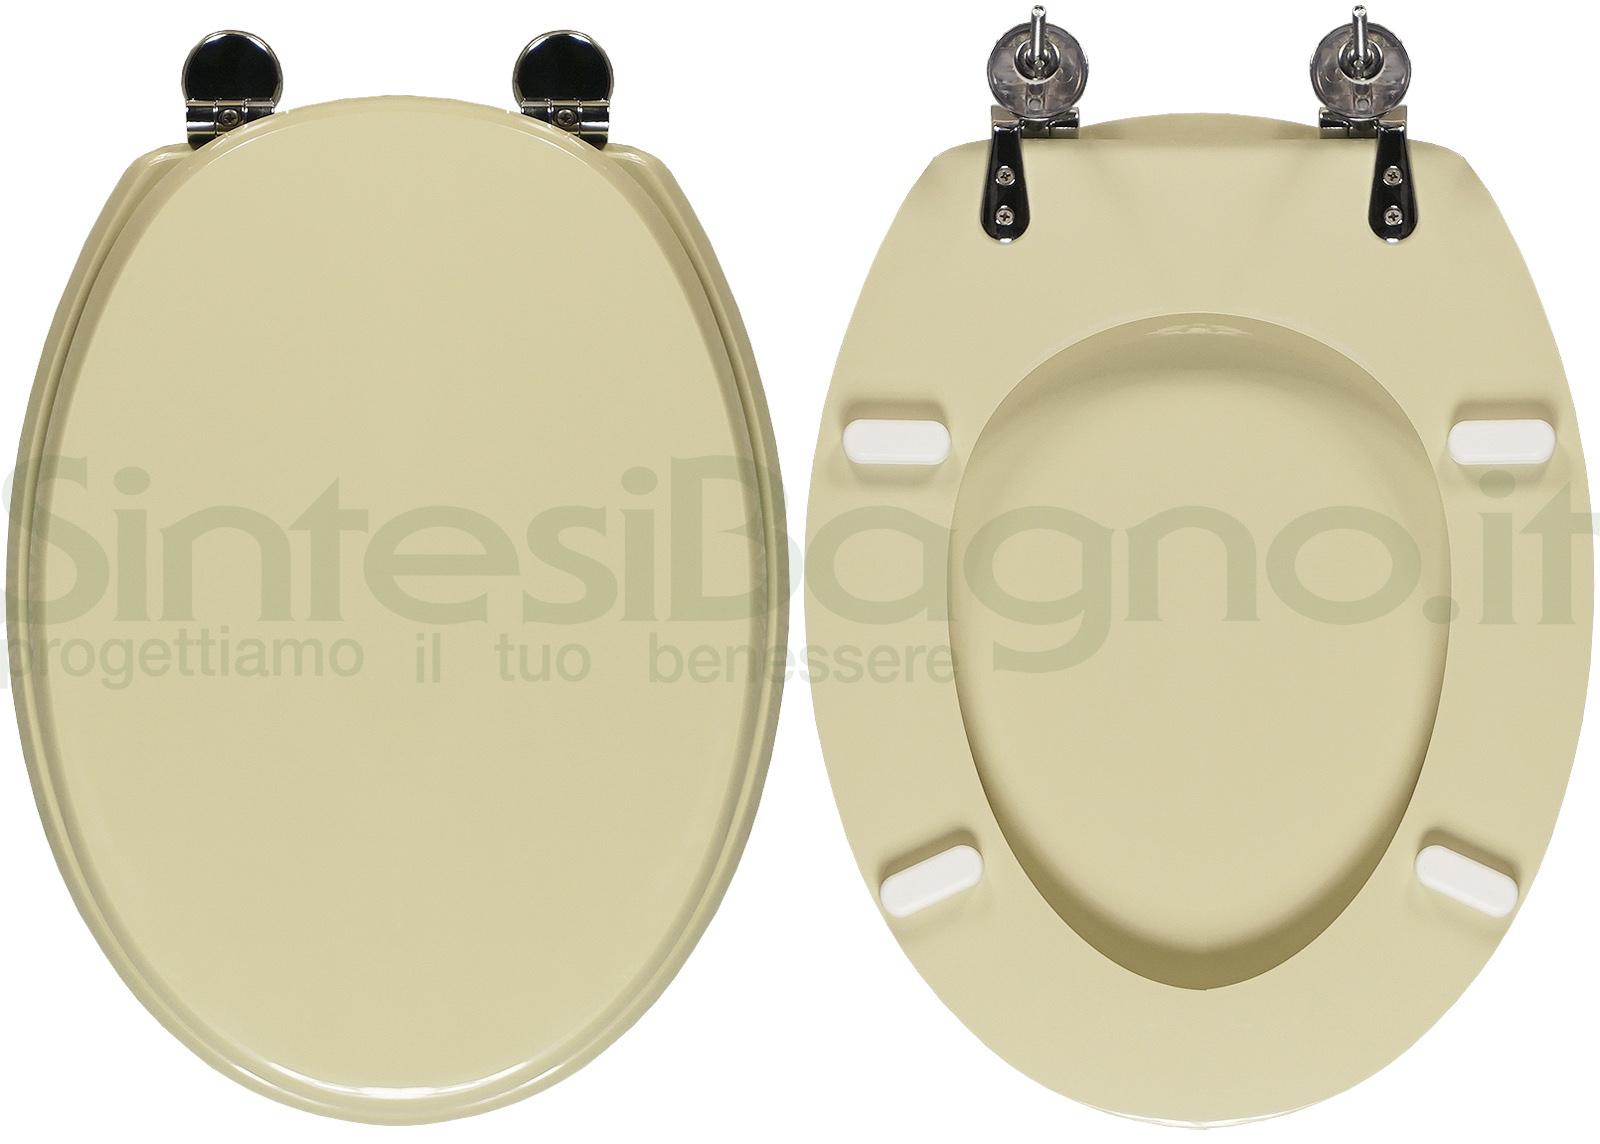 Asse Water Ideal Standard.Copriwater Per Wc Ellisse Ideal Standard Champagne Ricambio